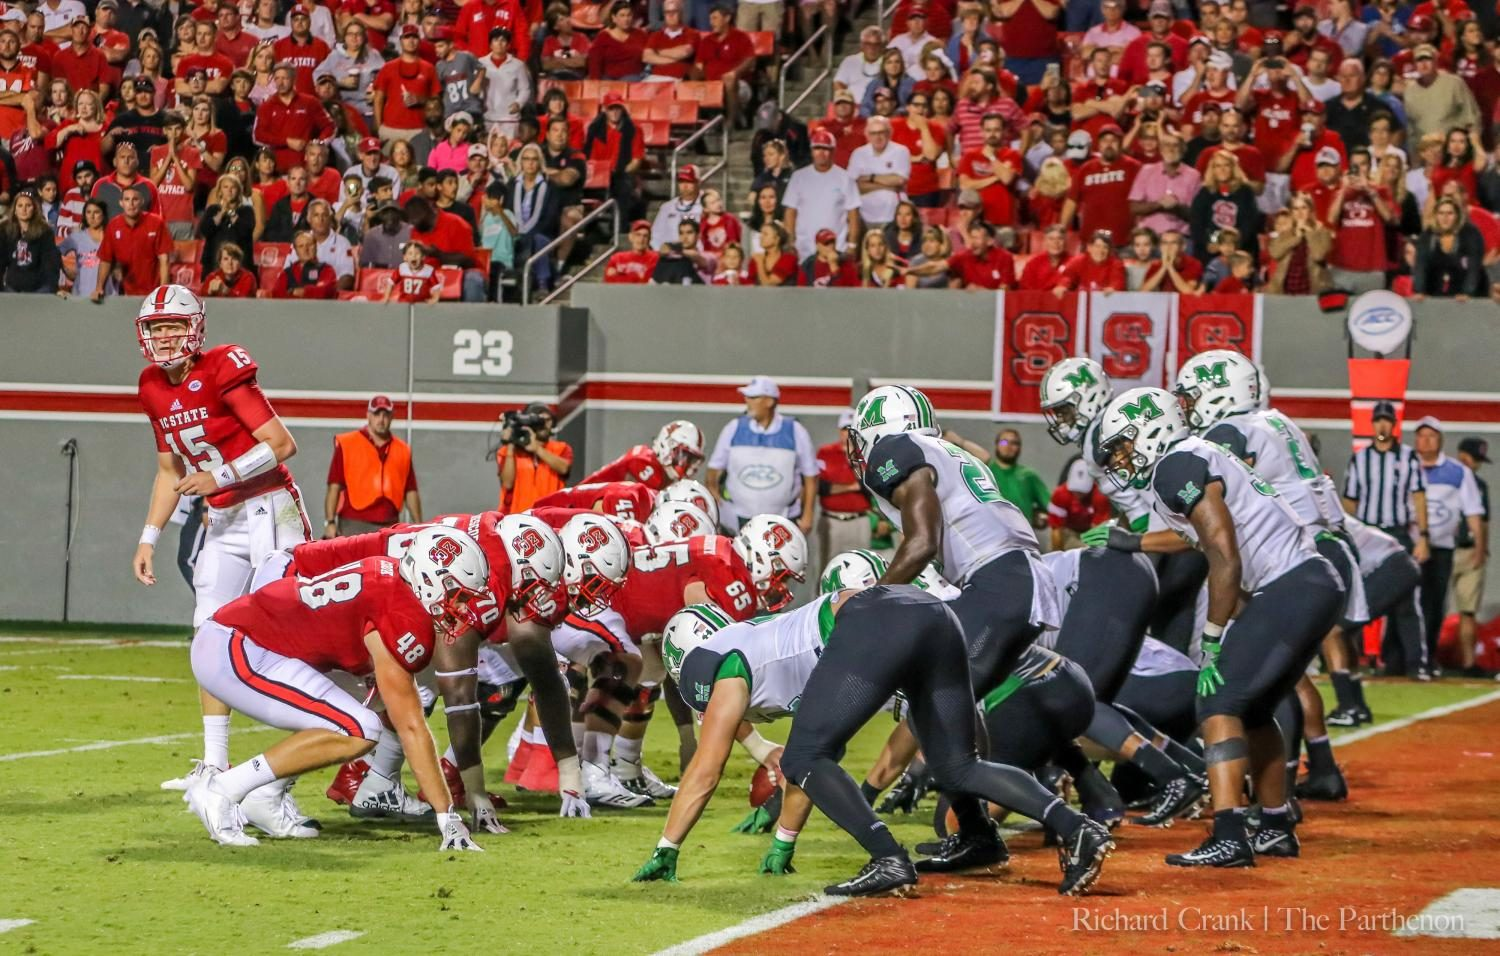 NC+State+redshirt+junior+quarterback+Ryan+Finley+looks+over+to+the+Wolfpack+sideline+for+the+play+in+a+goal+line+situation+against+Marshall+at+Carter-Finley+Stadium+in+Raleigh%2C+N.C.+Saturday%2C+Sept.+9.+The+Thundering+Herd+led+20-10+with+5%3A07+remaining+in+the+first+half%2C+but+allowed+the+Wolfpack+to+score+27-unanswered+points+and+lost+37-20.